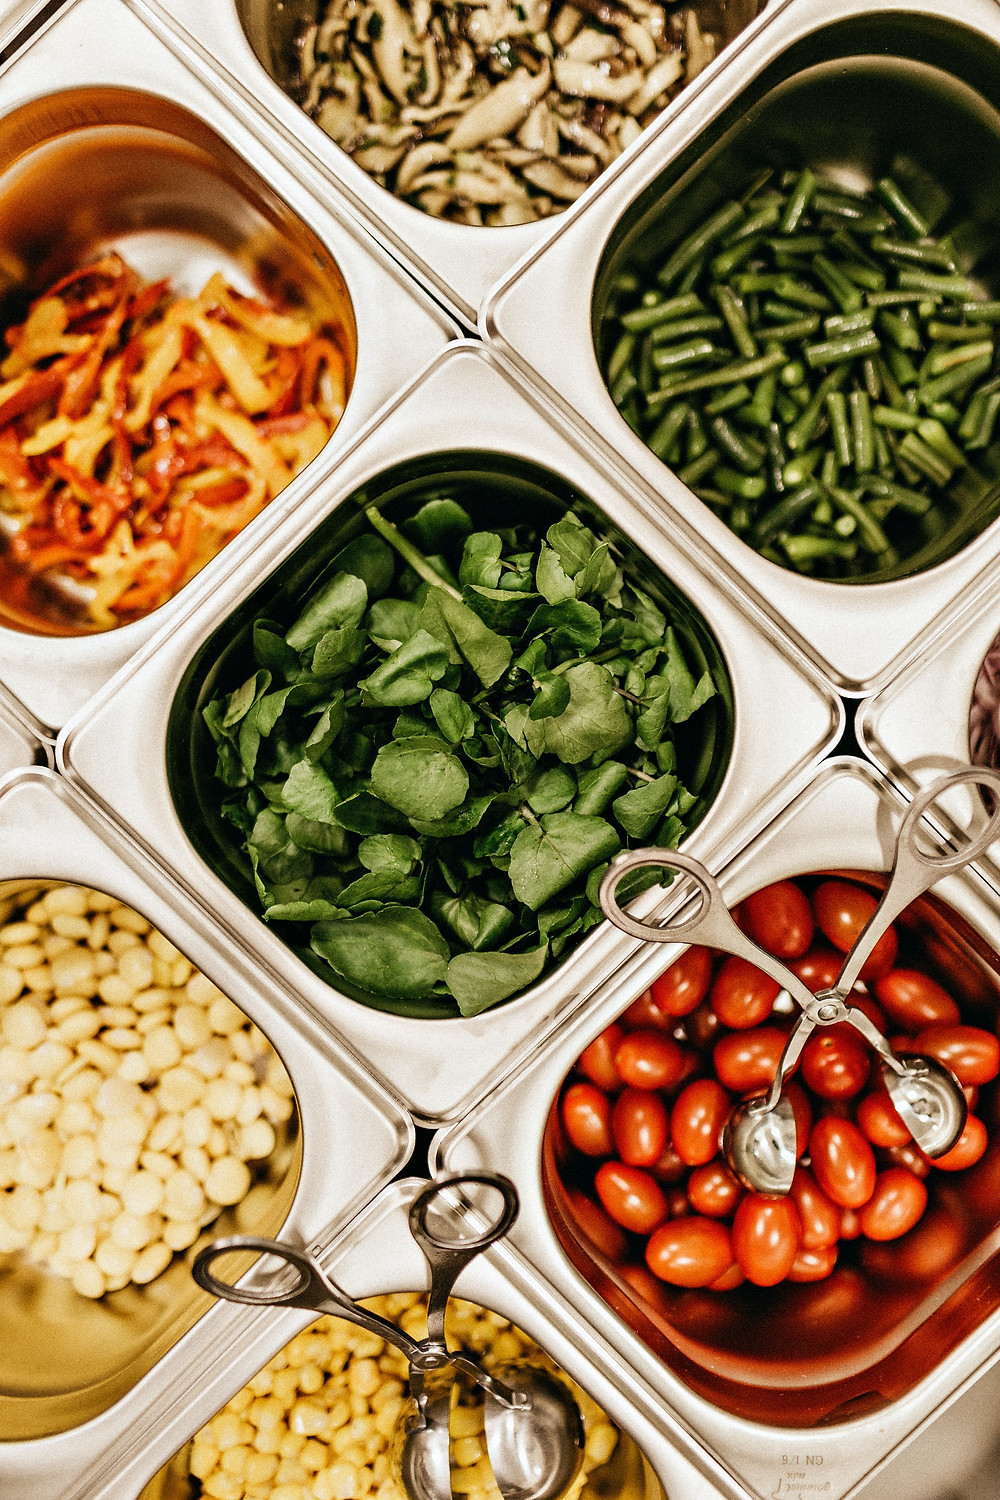 food variety, lunch program, food options at office, corporate food options